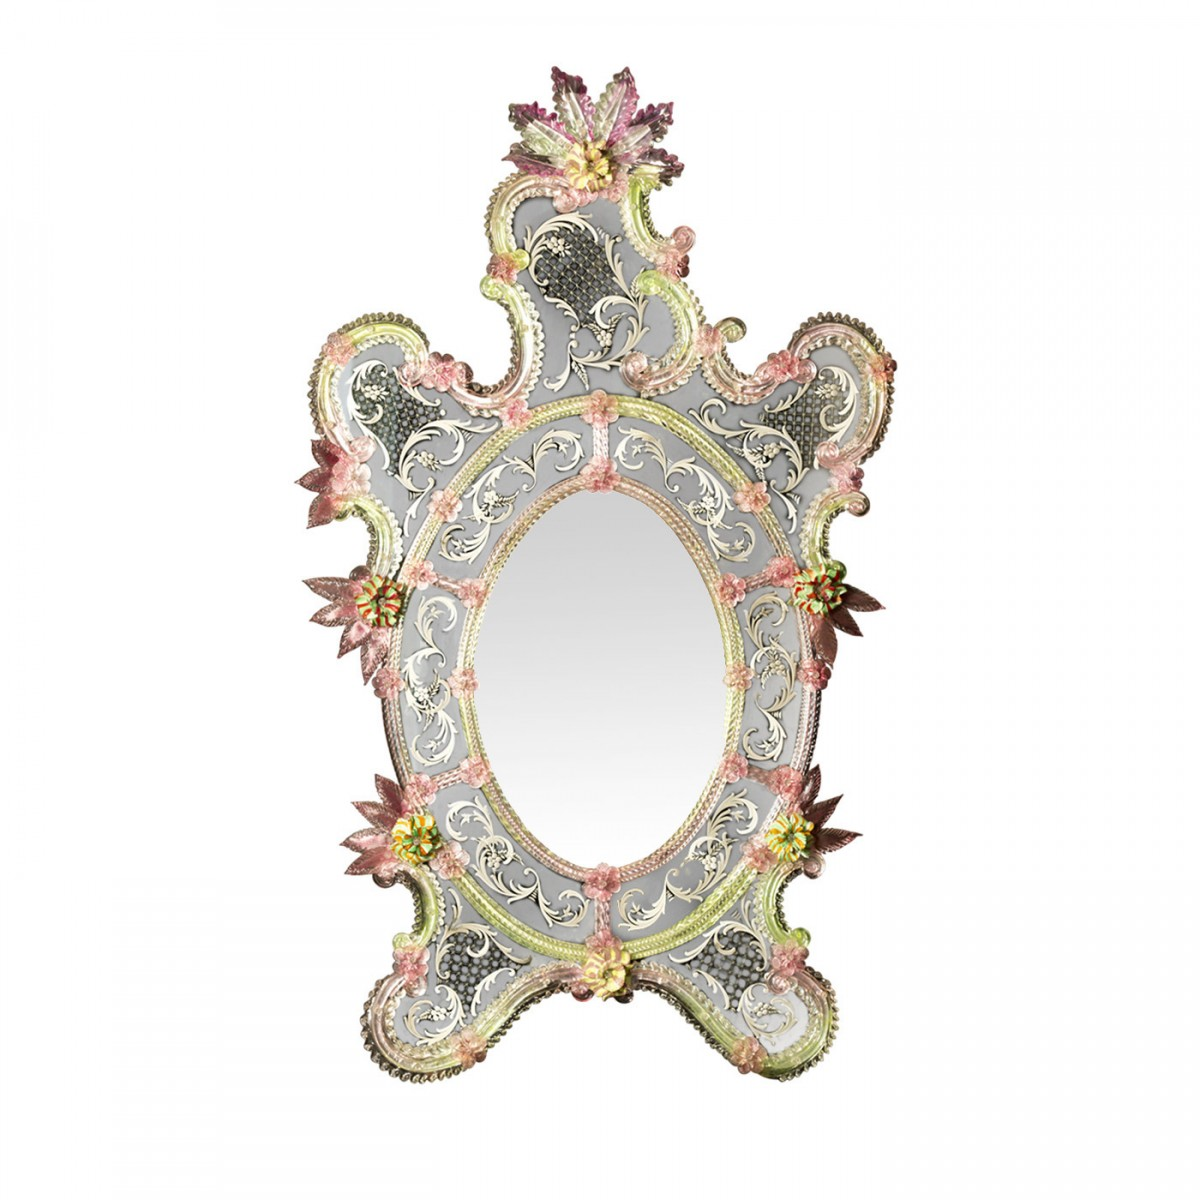 Ongaro & Fuga – Pavone Venetian Glass Mirror – Available on www.artemest.com